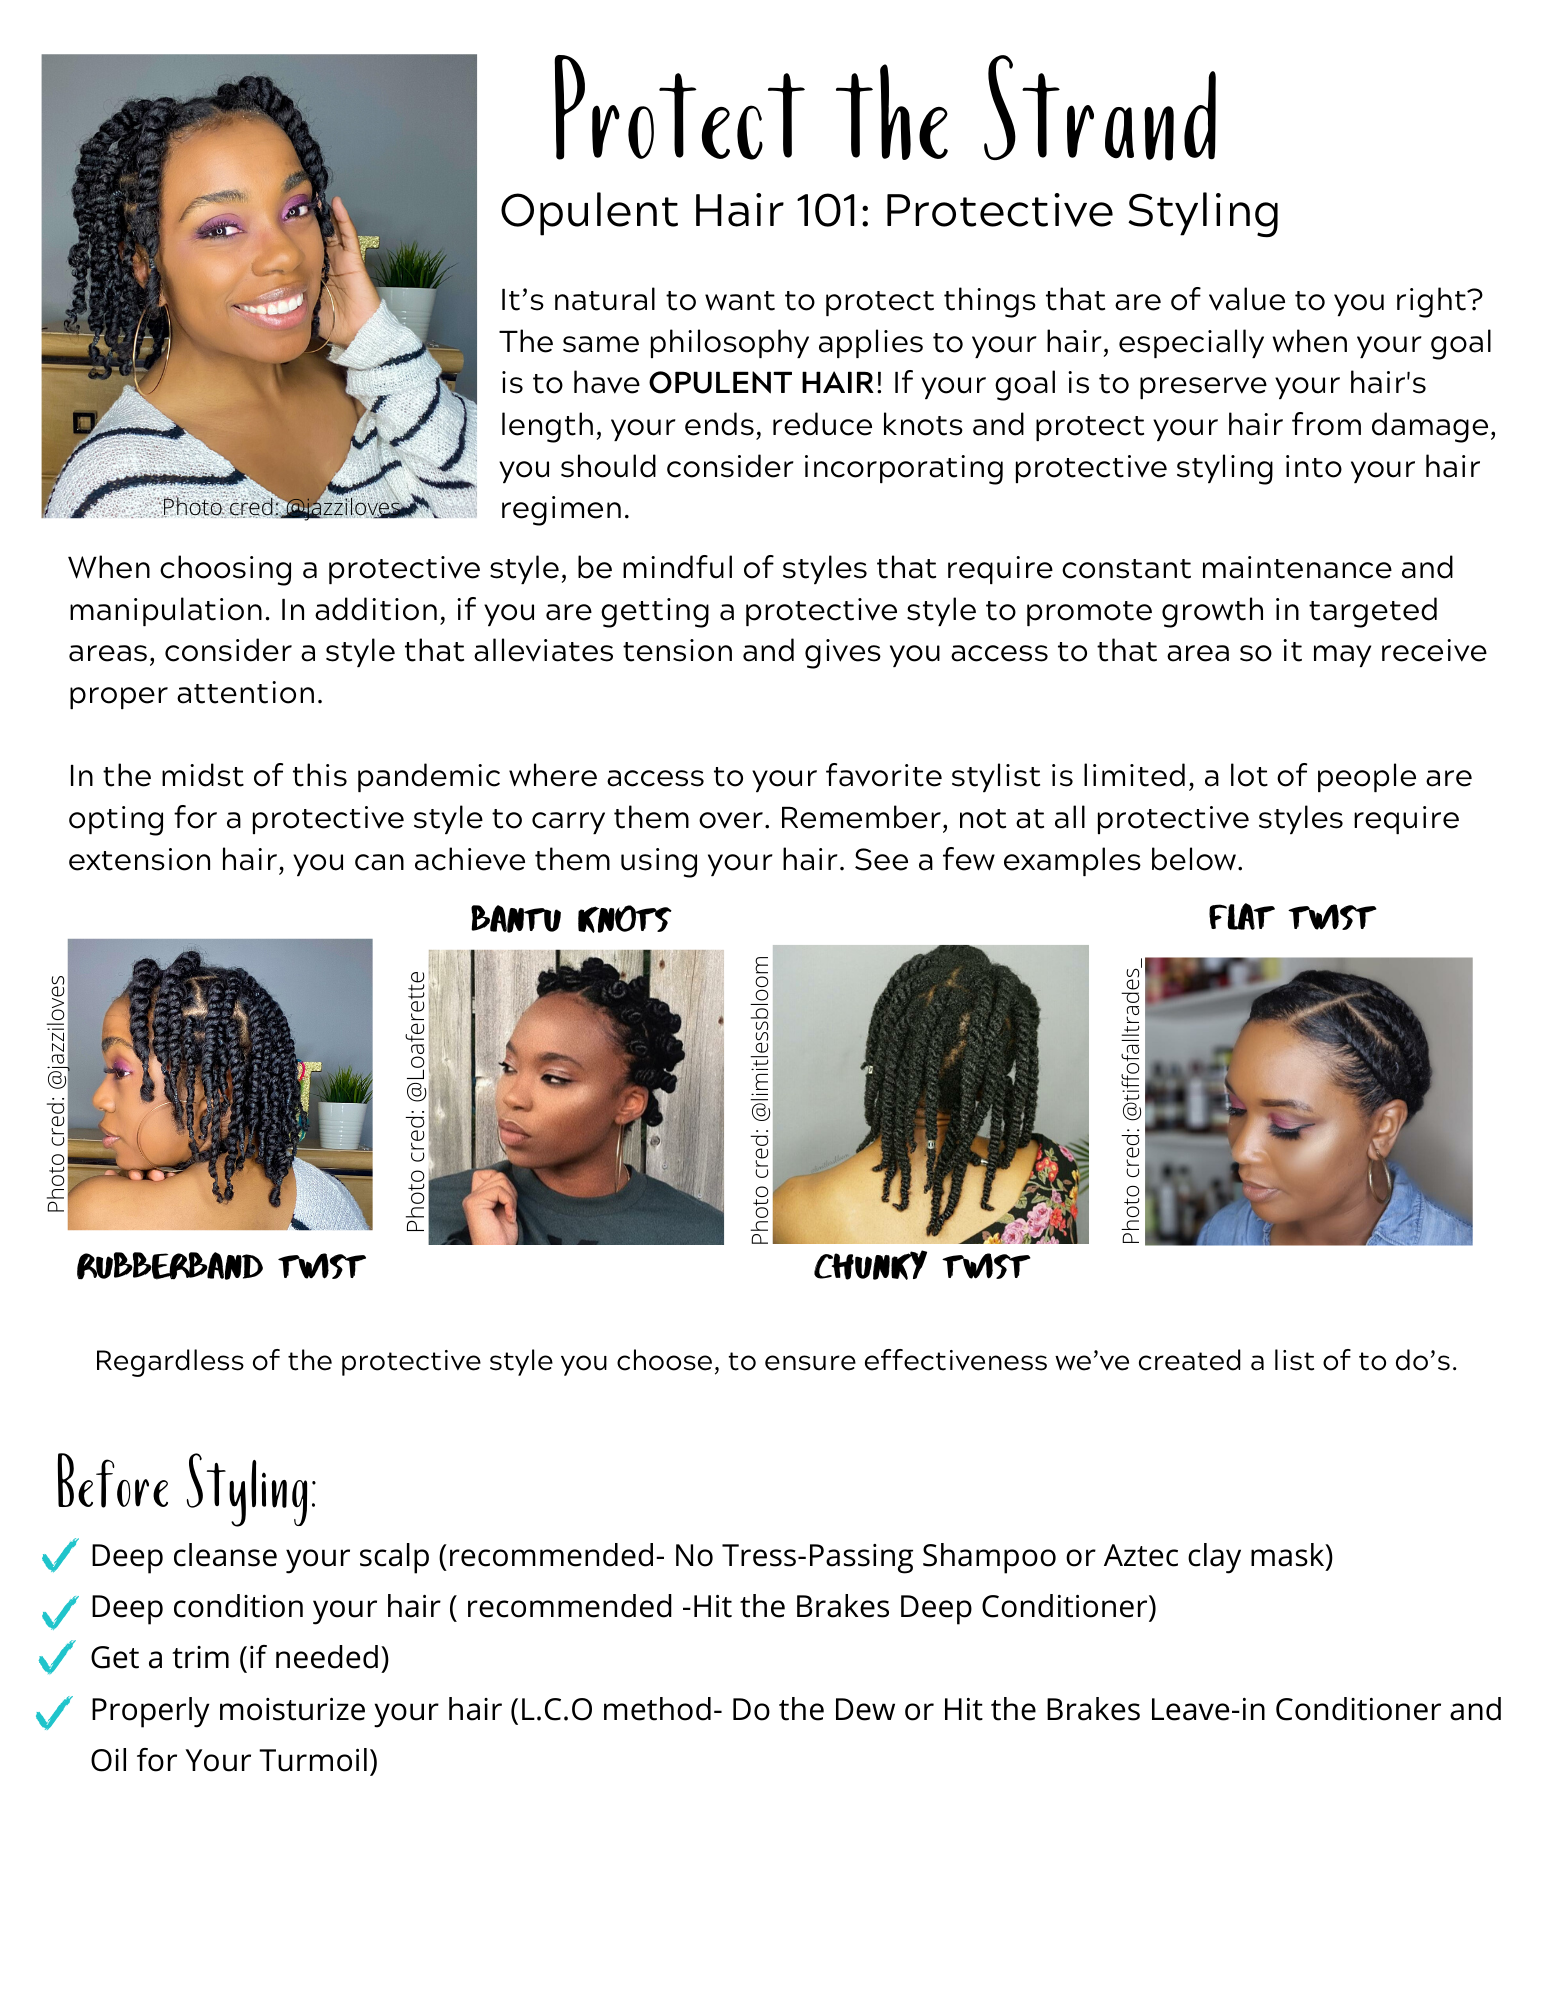 Tips for getting the best out of your protective styles